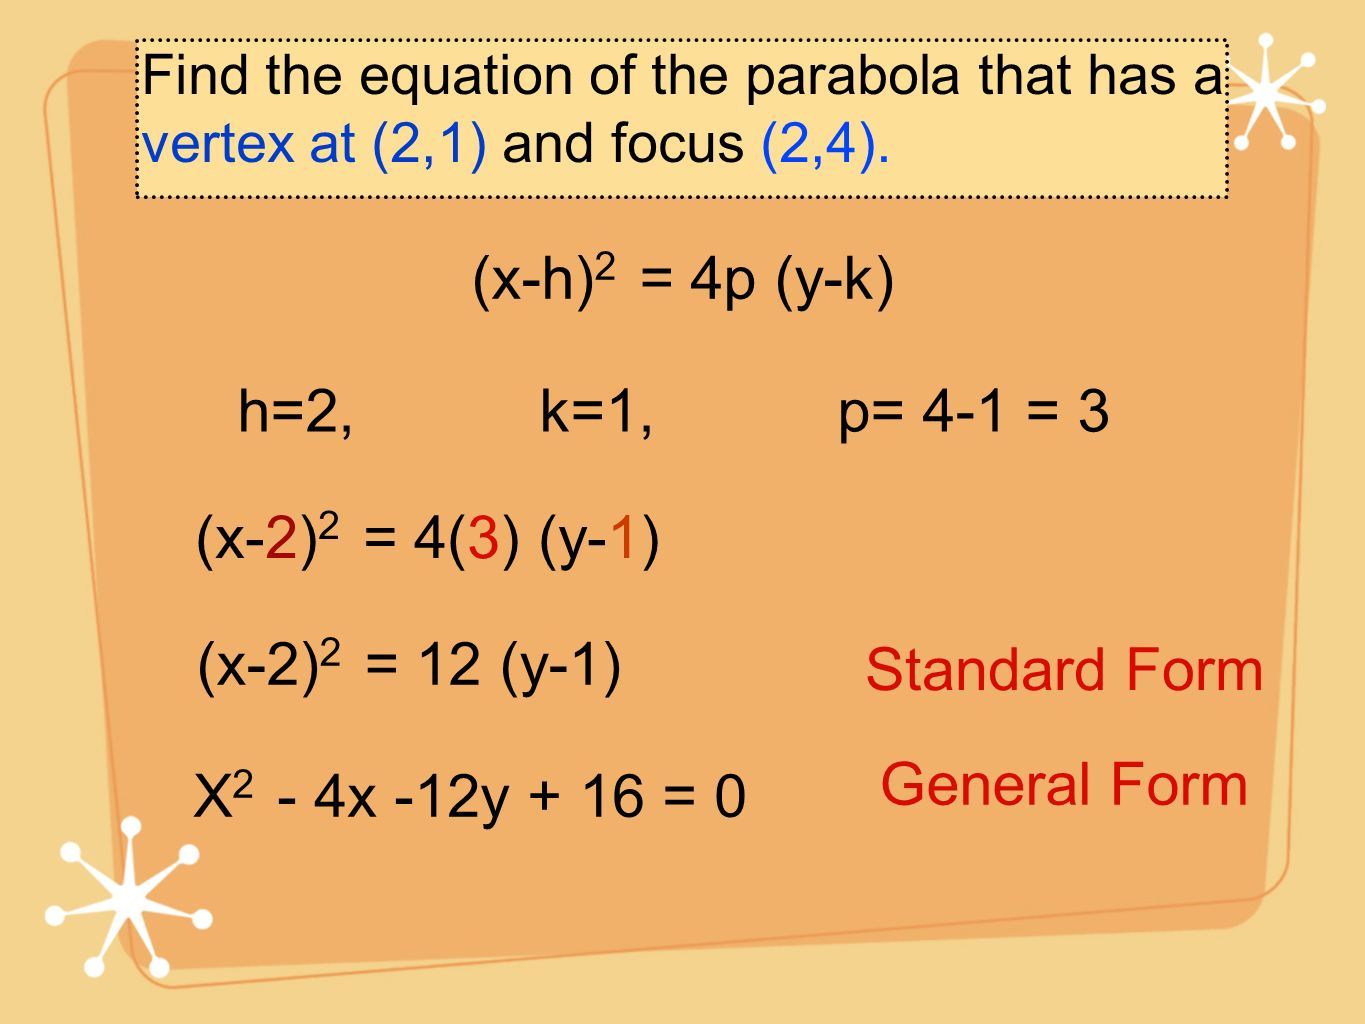 Find the equation of the parabola that has a vertex at (2,1) and focus (2,4). (x-h) 2 = 4p (y-k) h=2, k=1, p= 4-1 = 3 (x-2) 2 = 4(3) (y-1) (x-2) 2 = 1